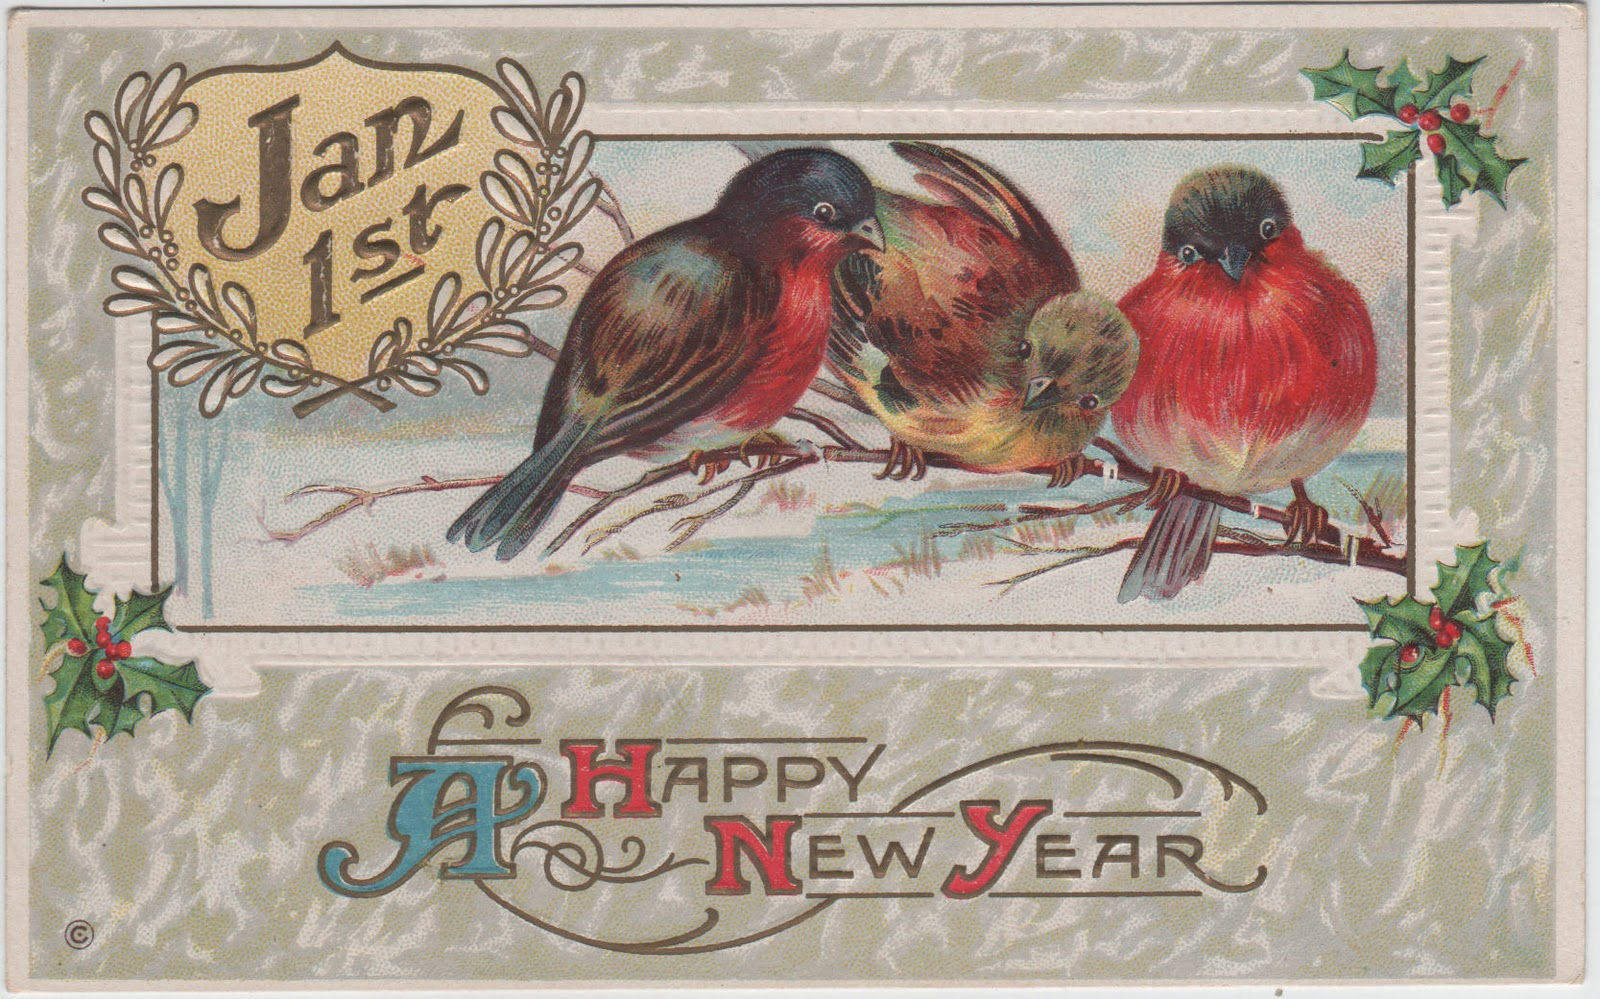 vintage everyday: Wish You a Happy New Year!